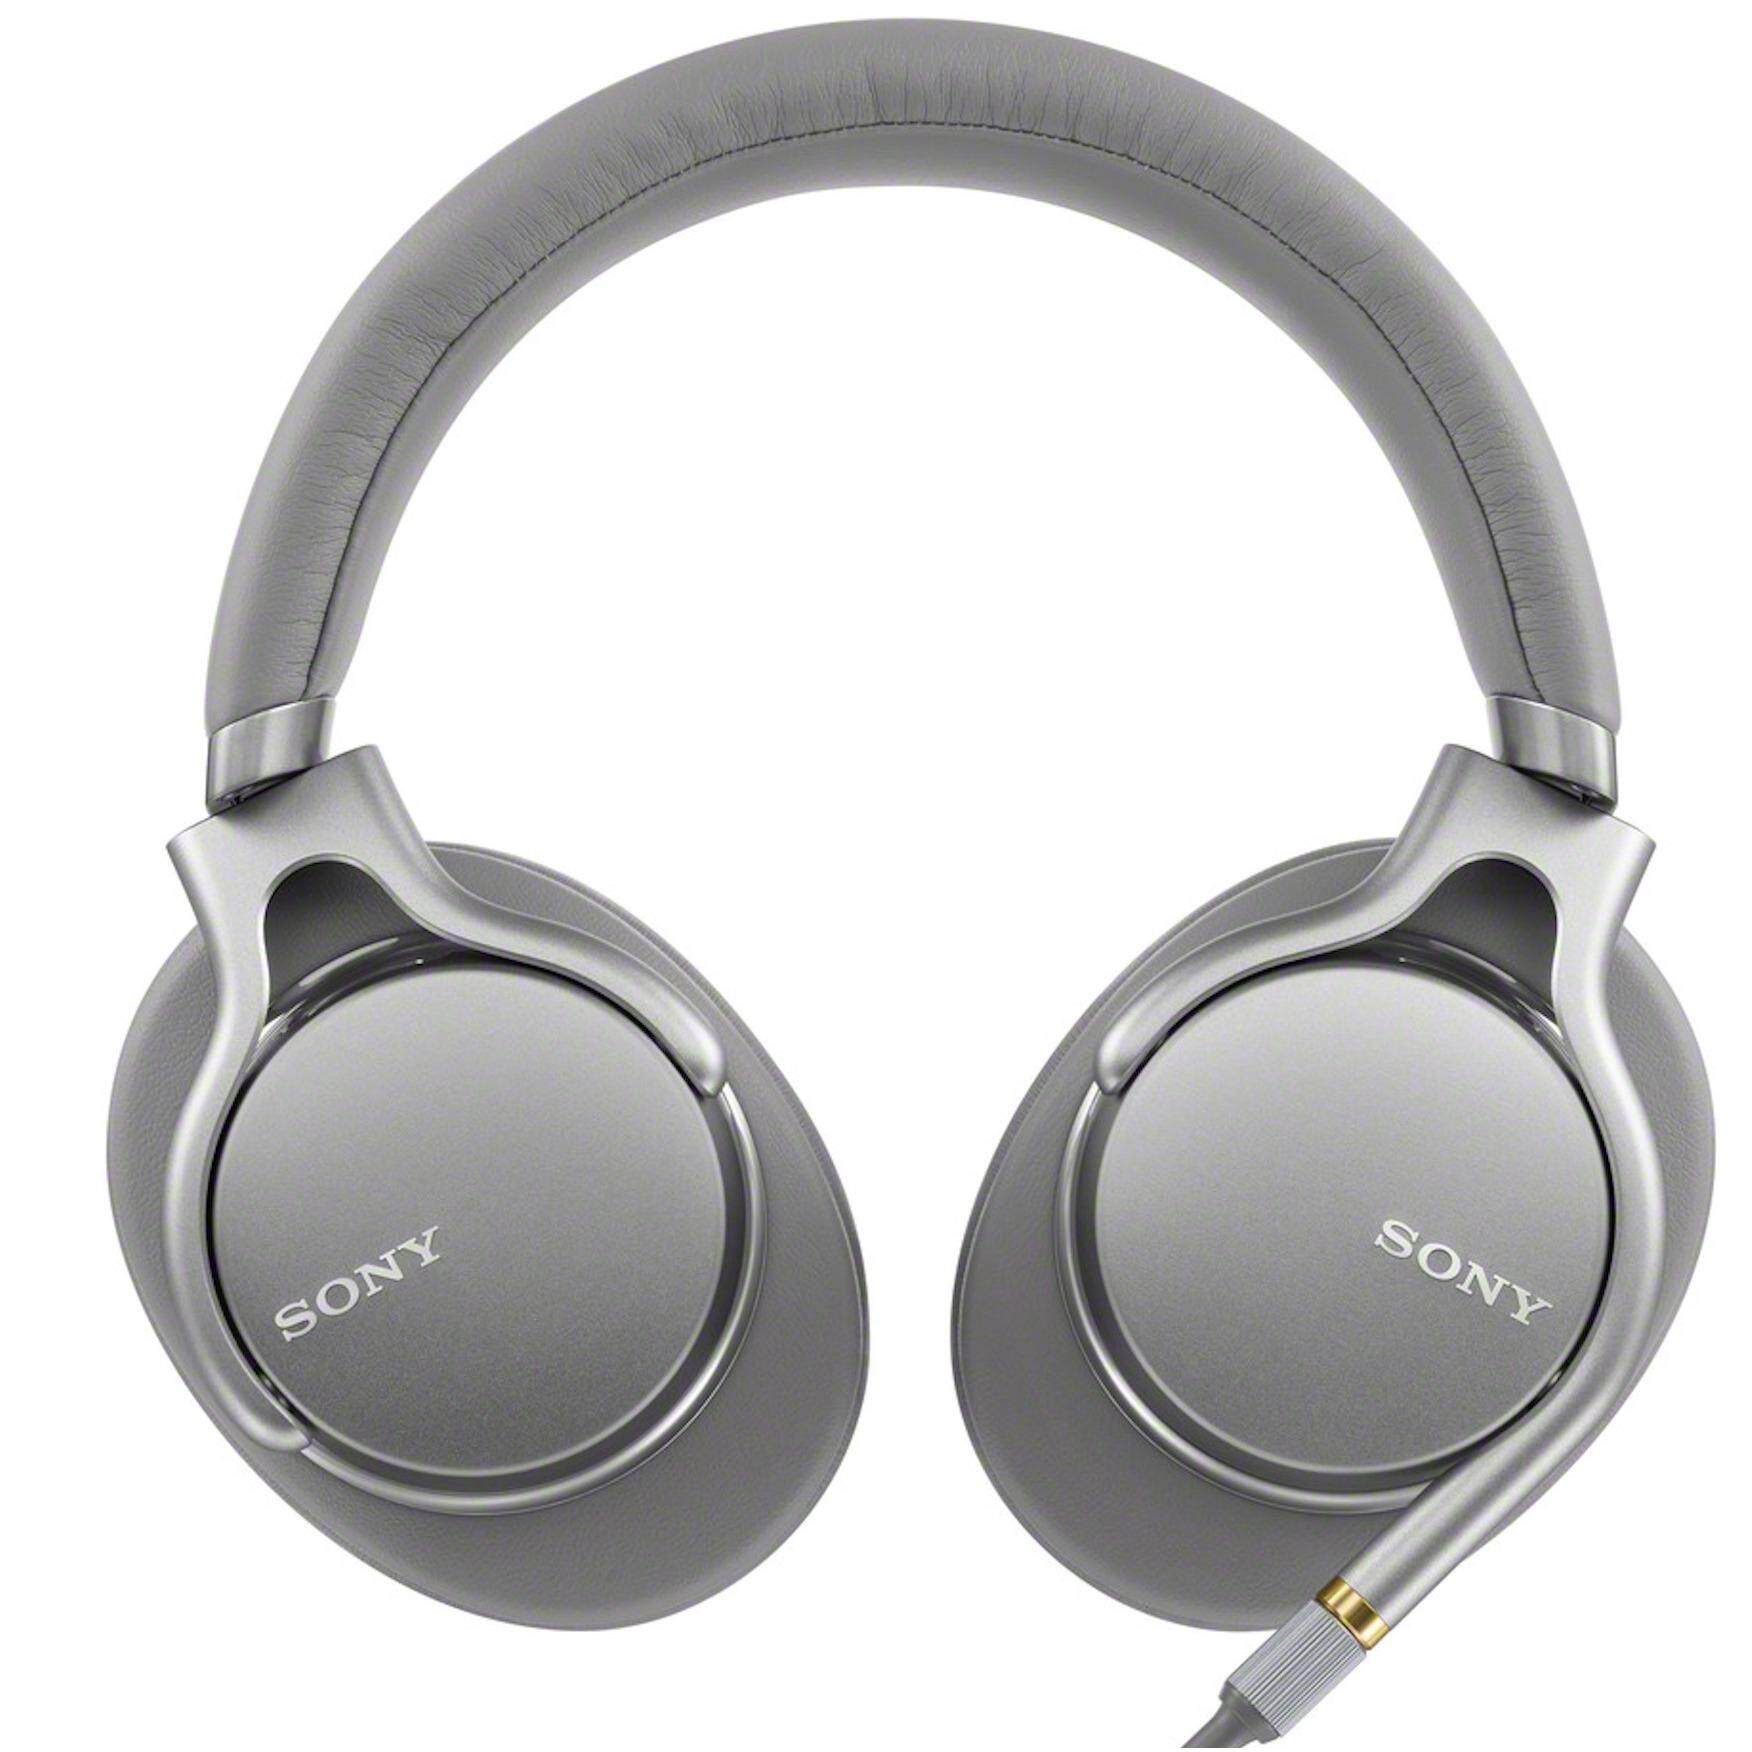 Harga Dan Spek Alex S A Headphone Sony Hear On Mdr 100aap Rowe In Ear Ex9lp White Features Free Gift 1am2 Portable Hi Res Over Headphones